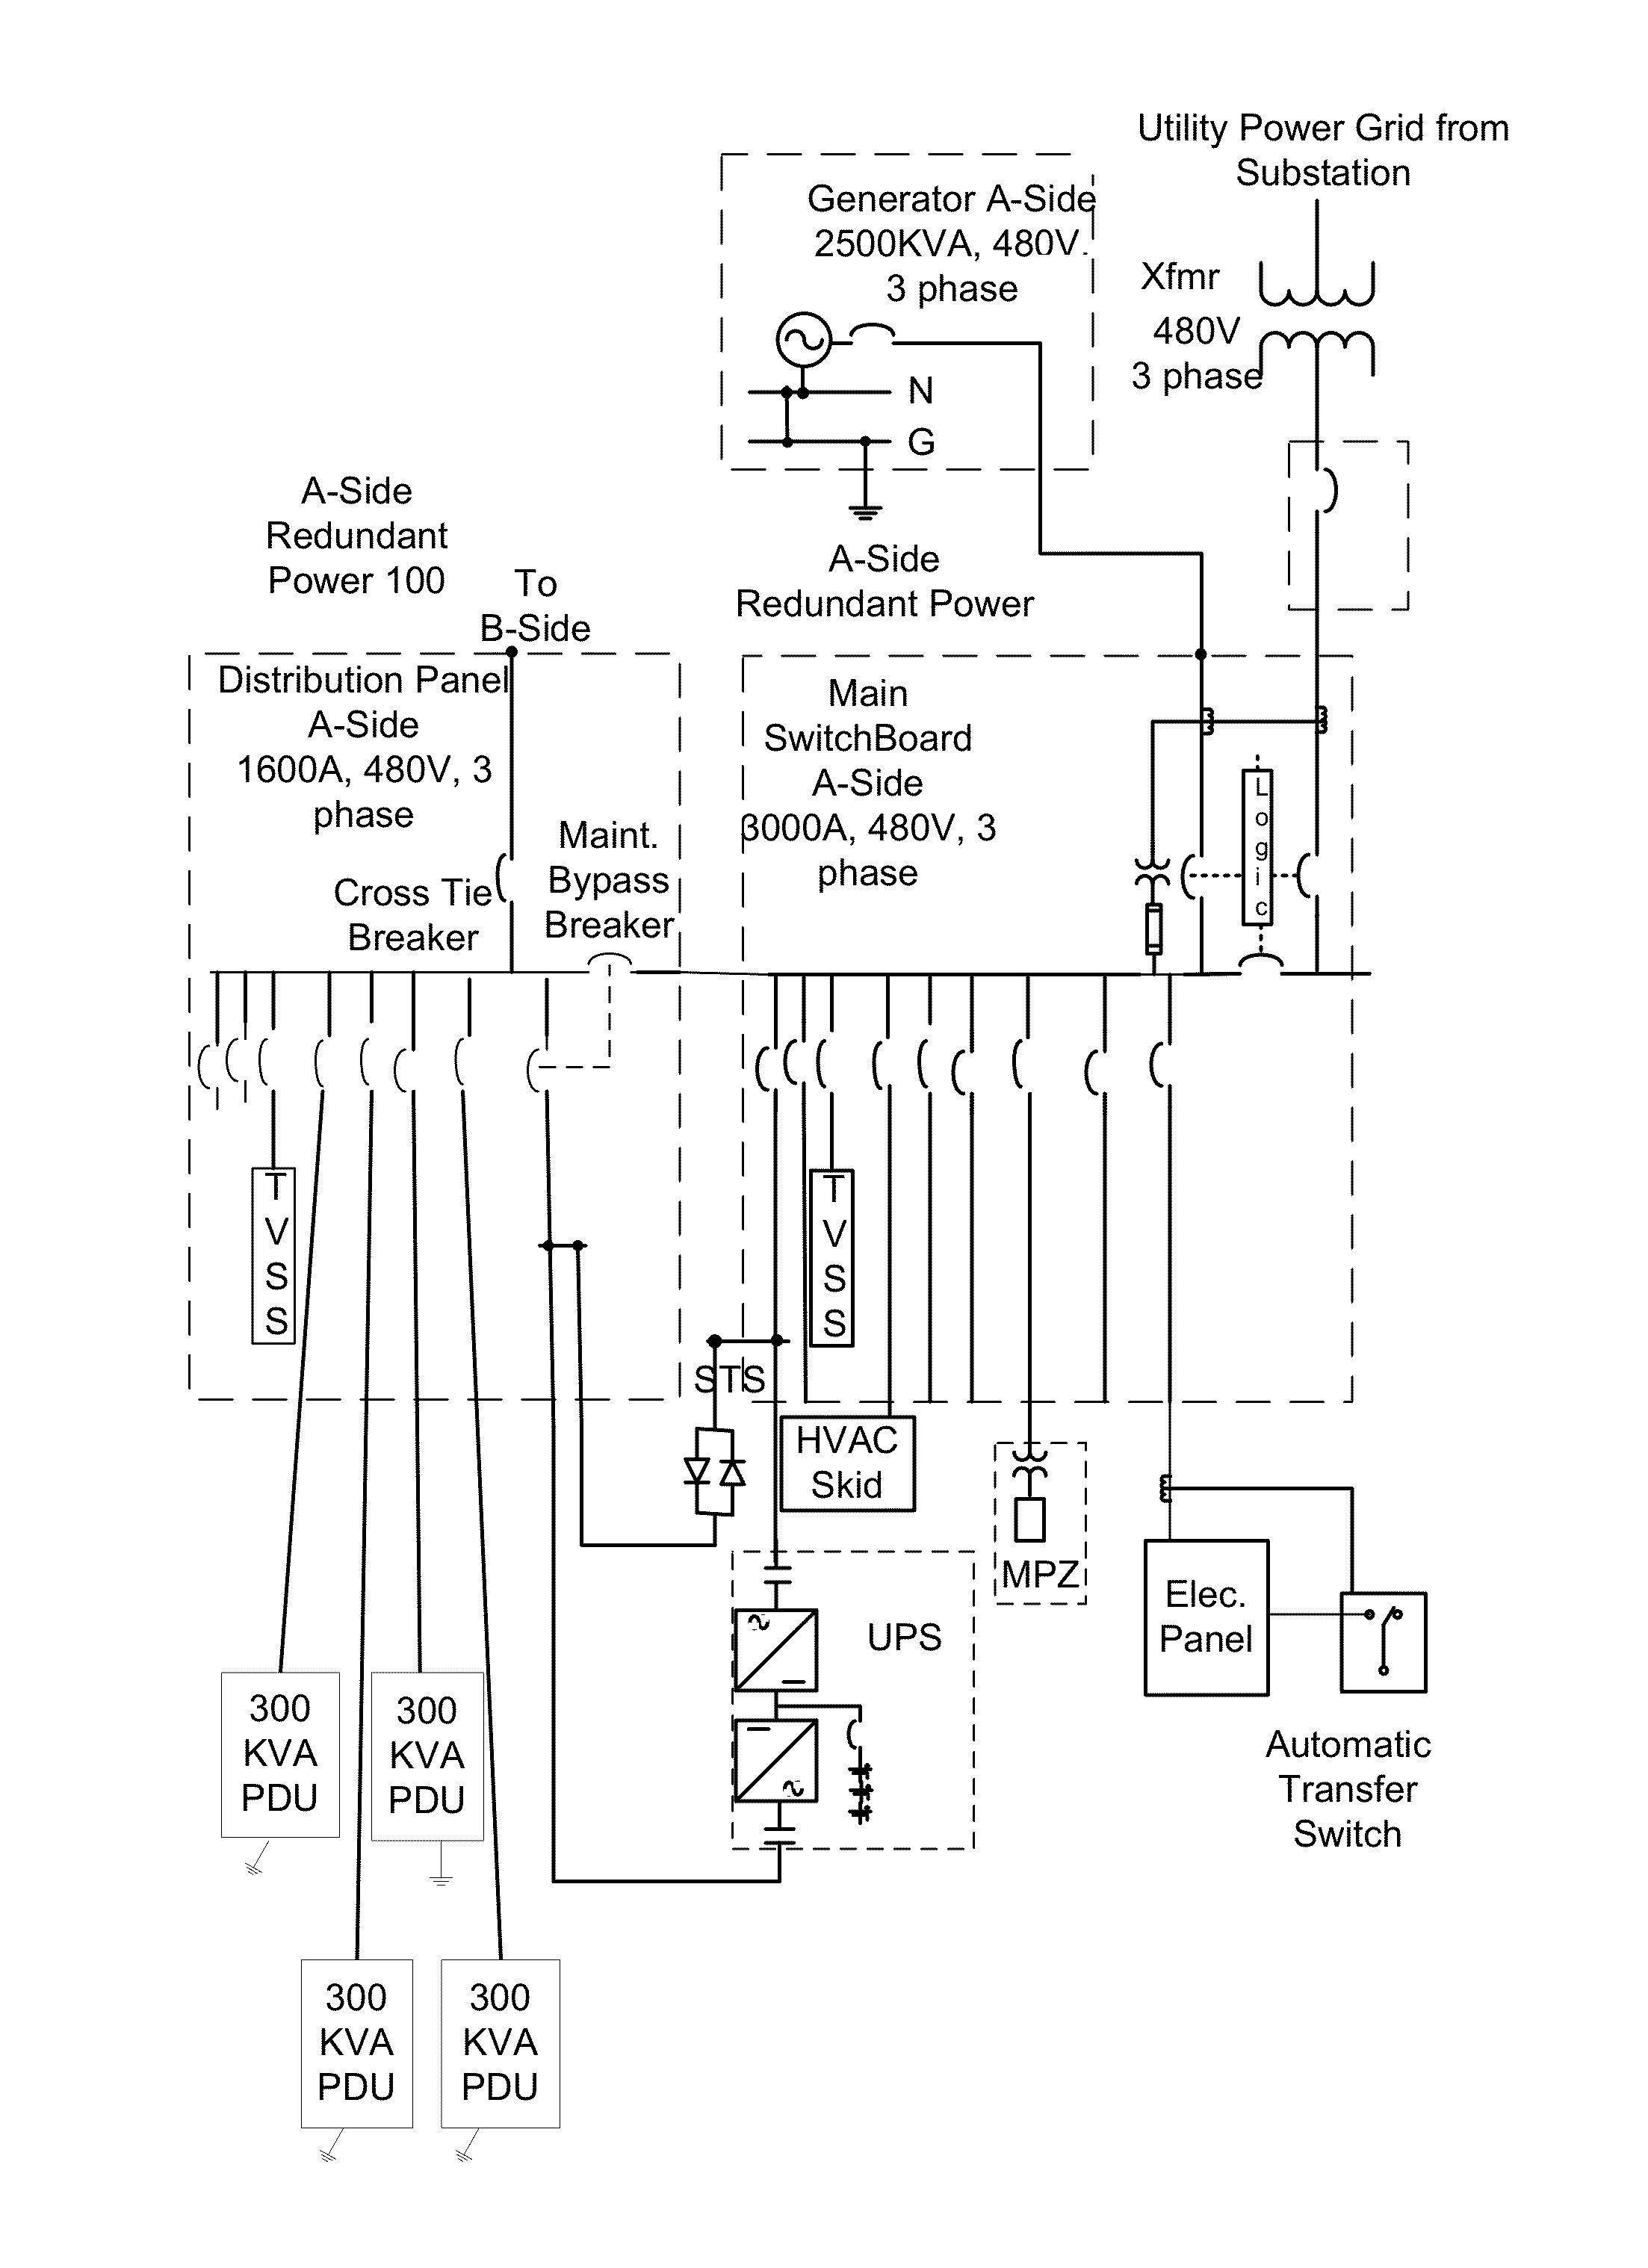 Wiring Diagram Bathroom Lovely Wiring Diagram Bathroom Bathroom Fan Light Wiring Diagram Mikulskilawoffices Circuit Diagram Diagram Lighting Diagram